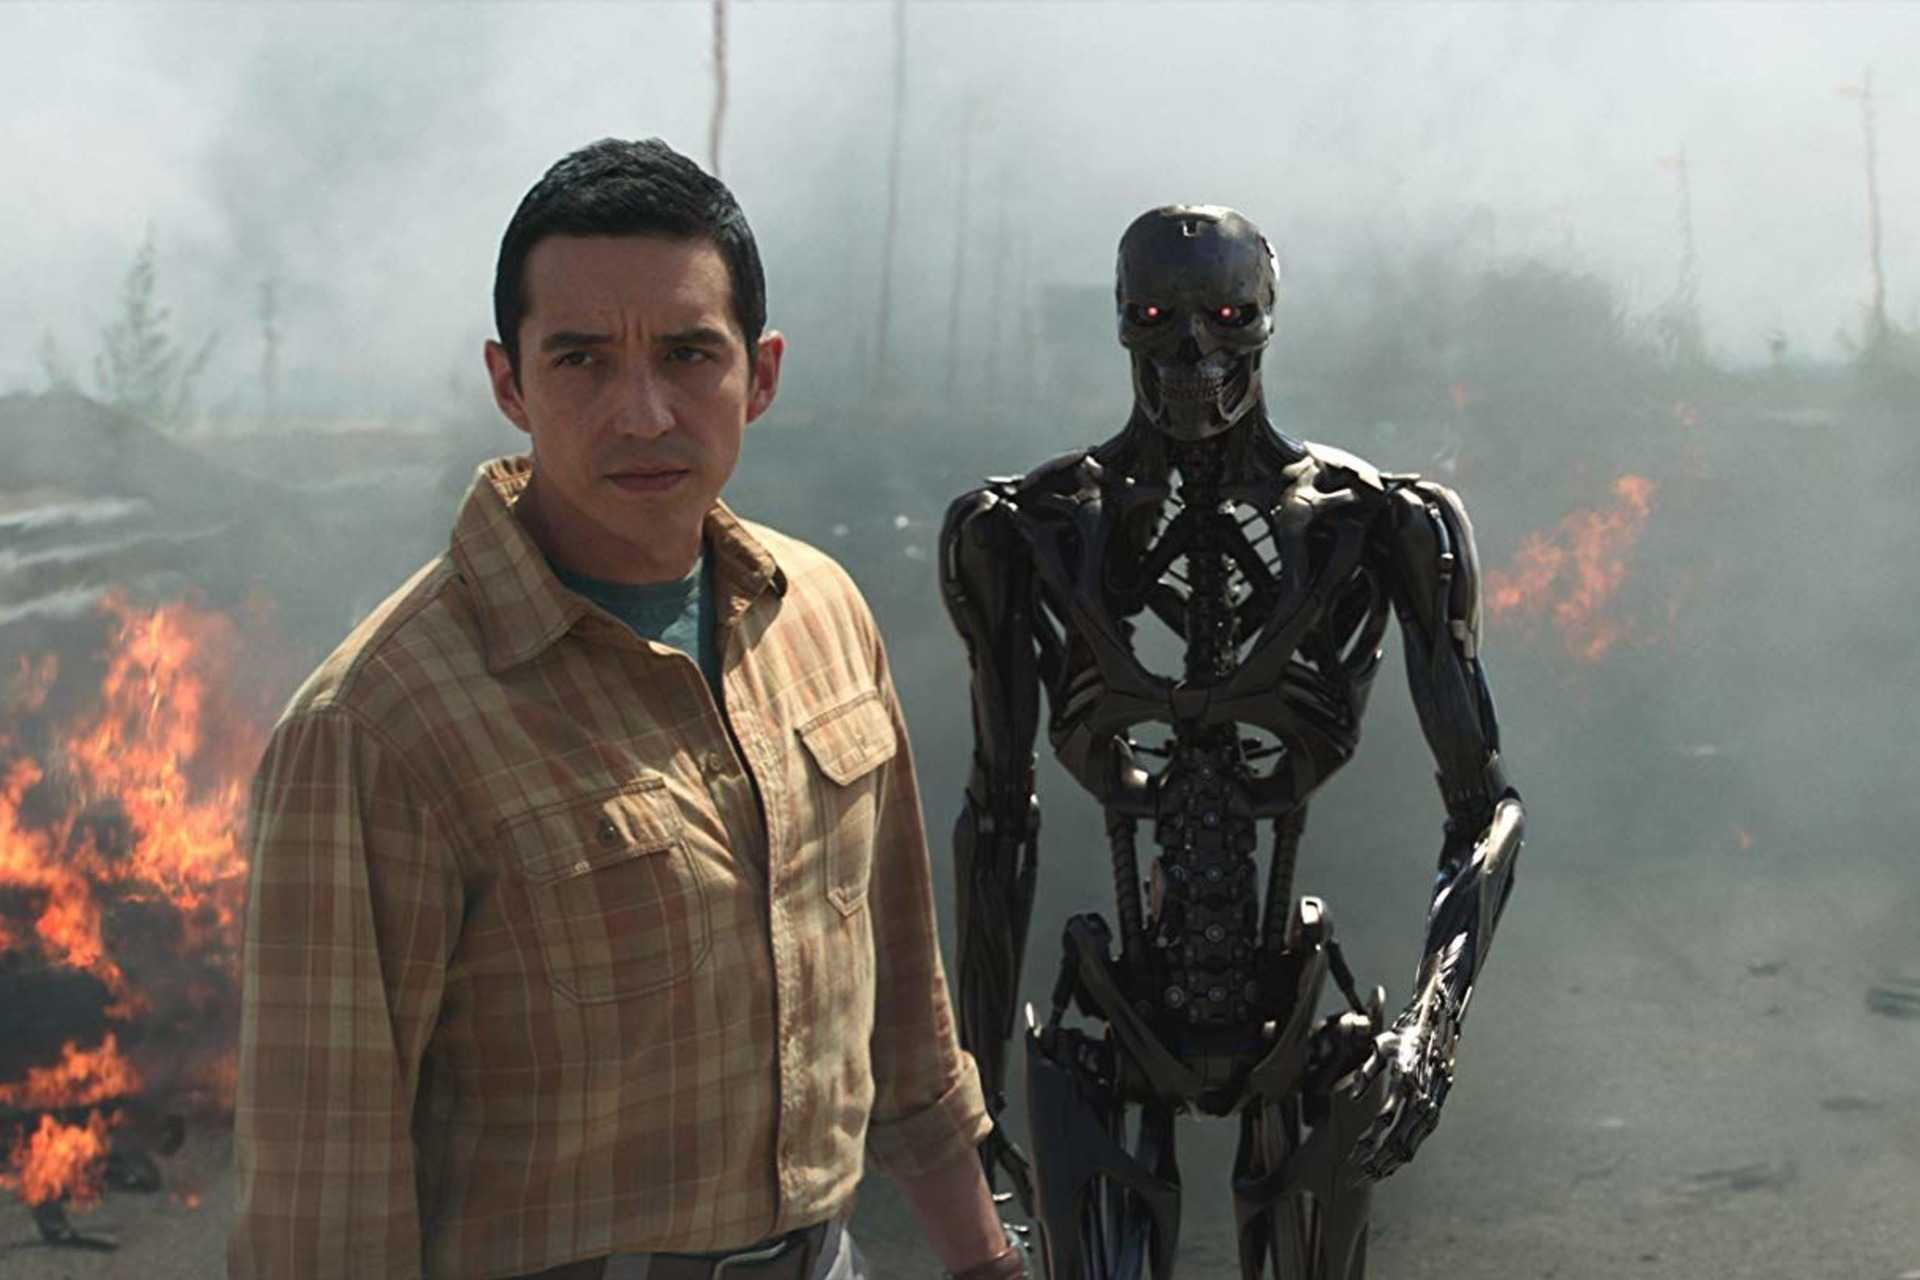 Gabriel Luna as the Rev-9 in Terminator: Dark Fate (2019)